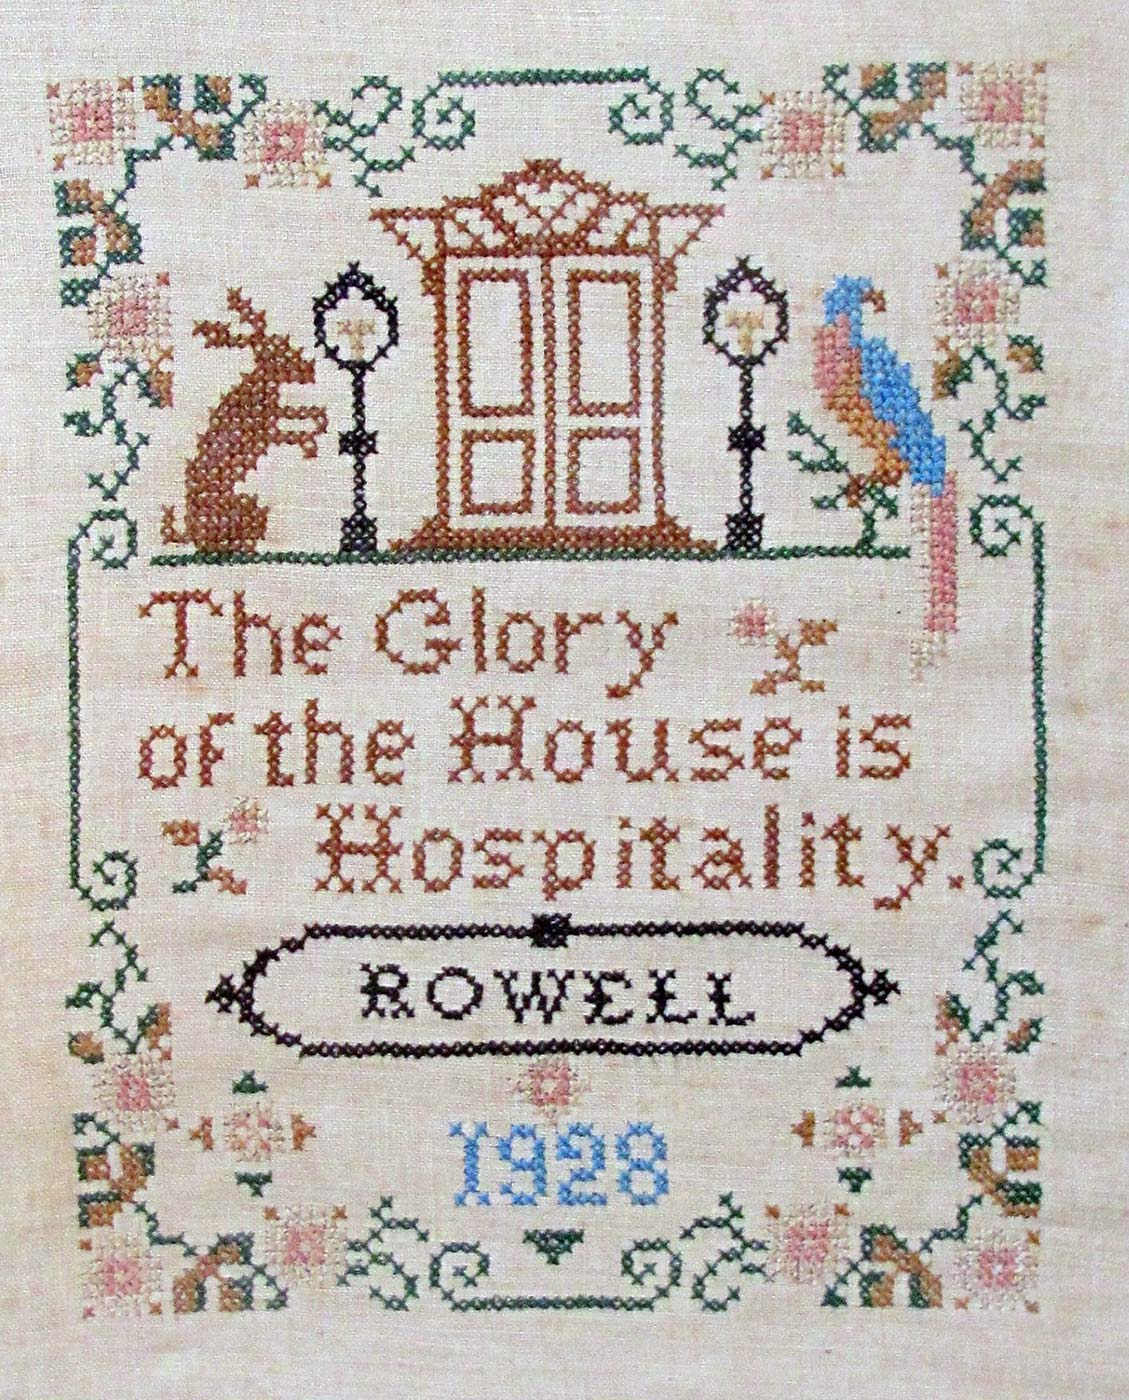 Needlepoint - Rowell's Inn Historic Photo